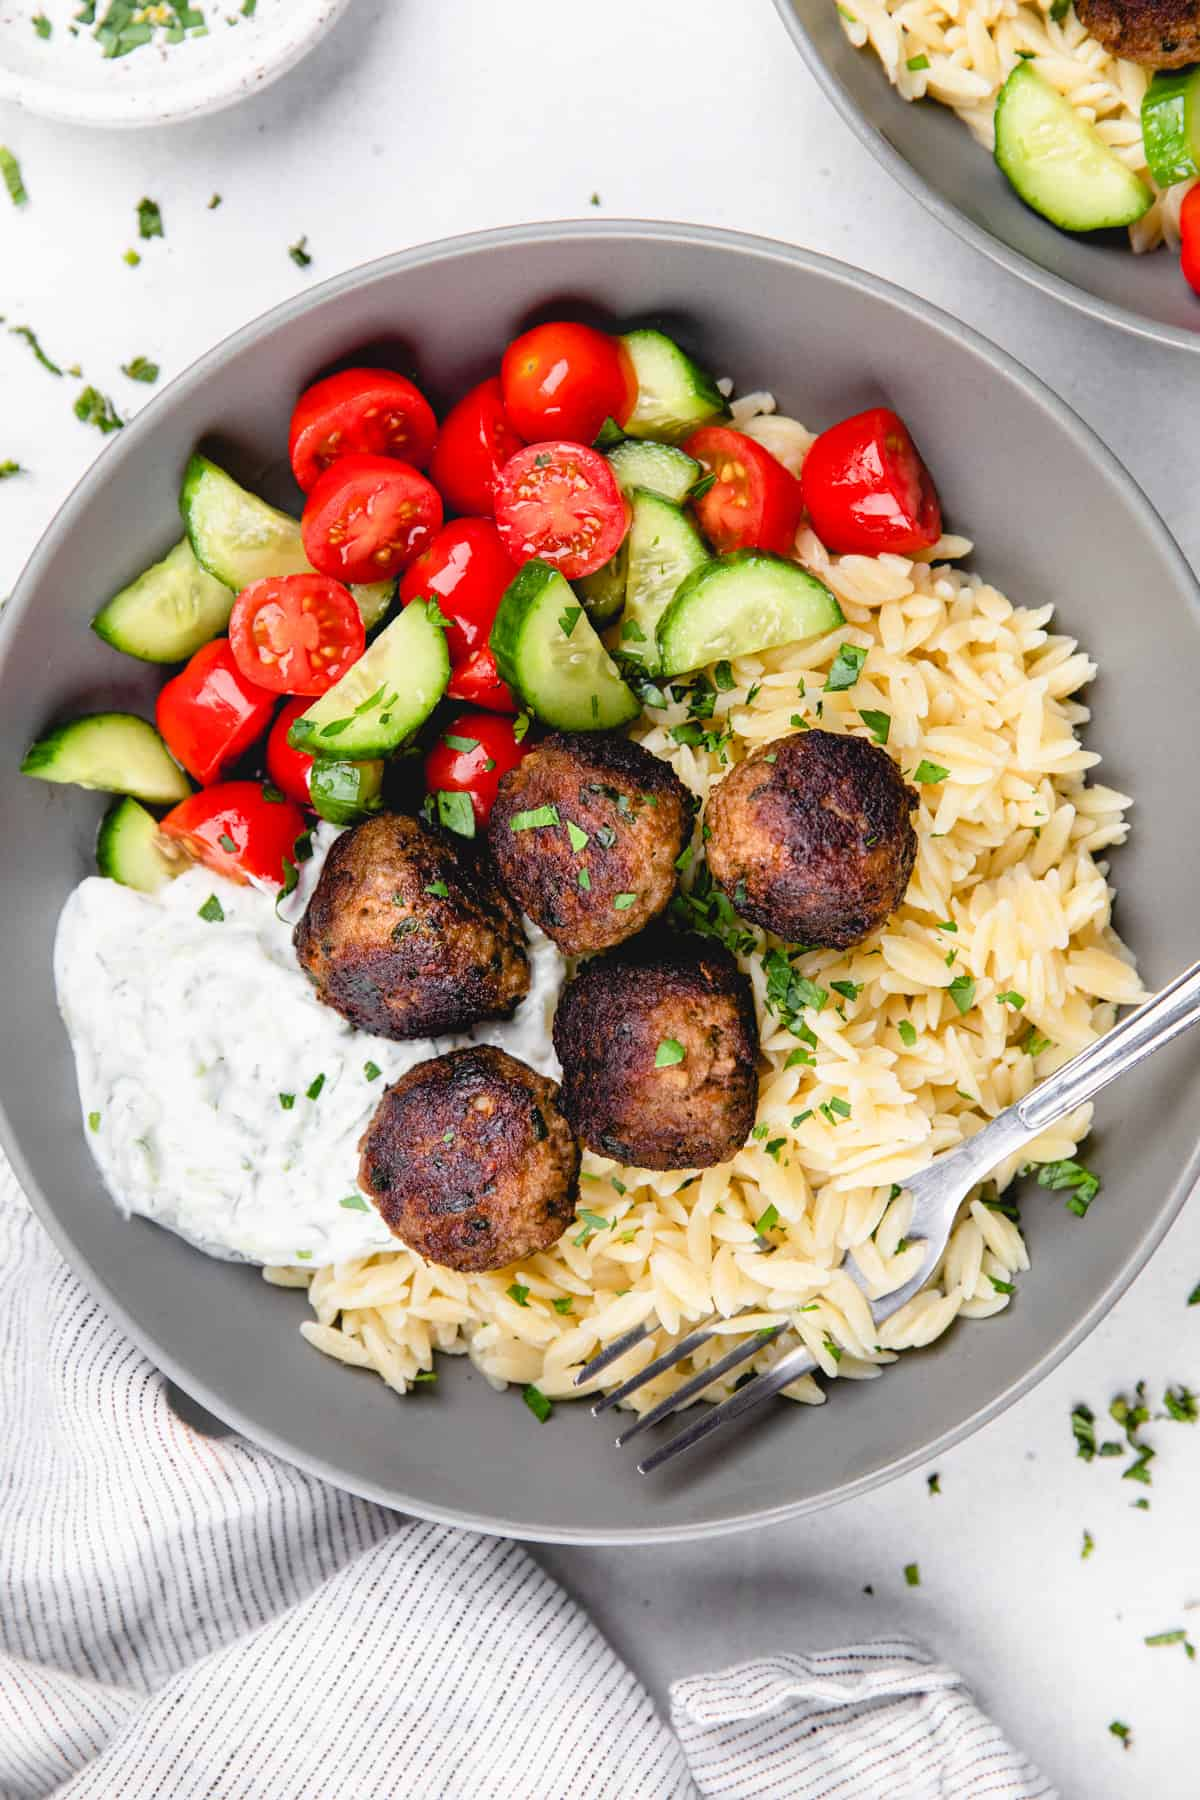 Greek meatballs with orzo, tzatziki sauce, and cherry cucumber salad in a grey bowl with a fork.